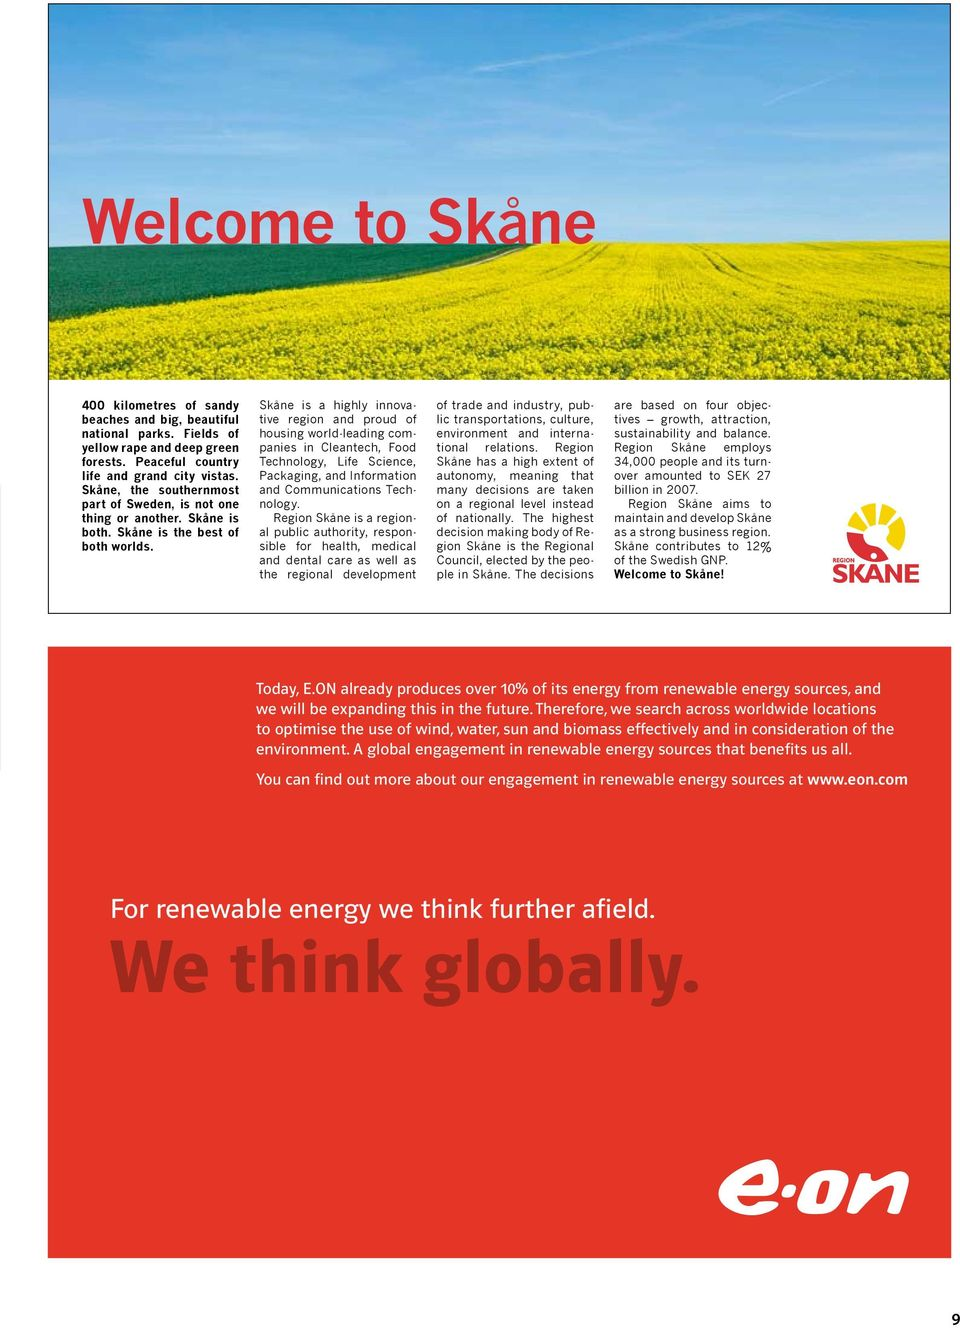 Skåne is a highly innovative region and proud of housing world-leading companies in Cleantech, Food Technology, Life Science, Packaging, and Information and Communications Technology.